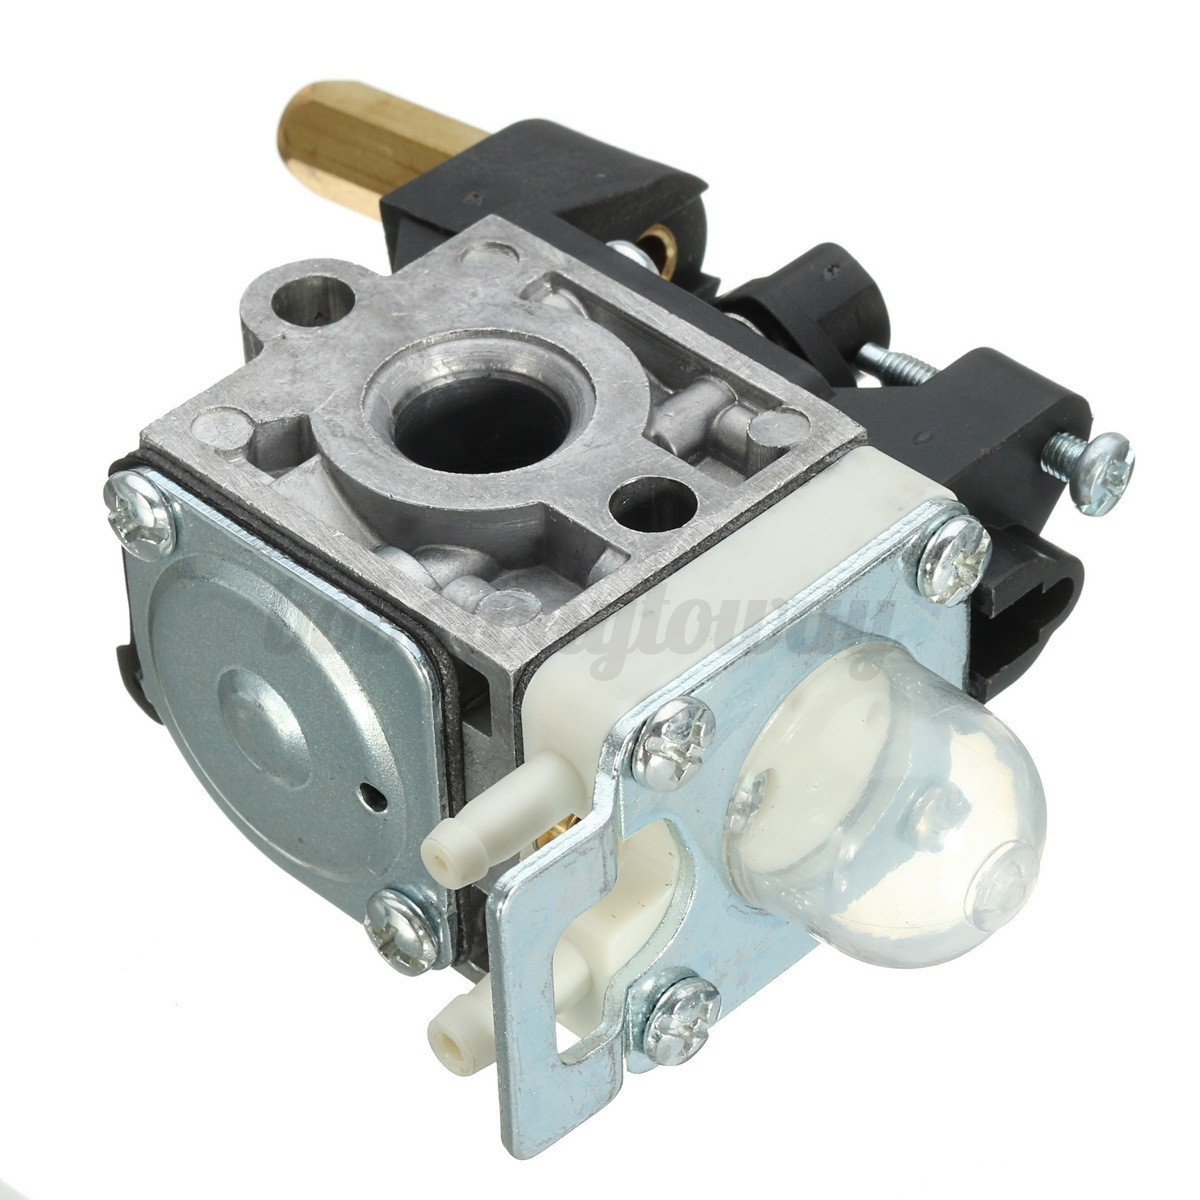 zama carburetor rebuild instructions